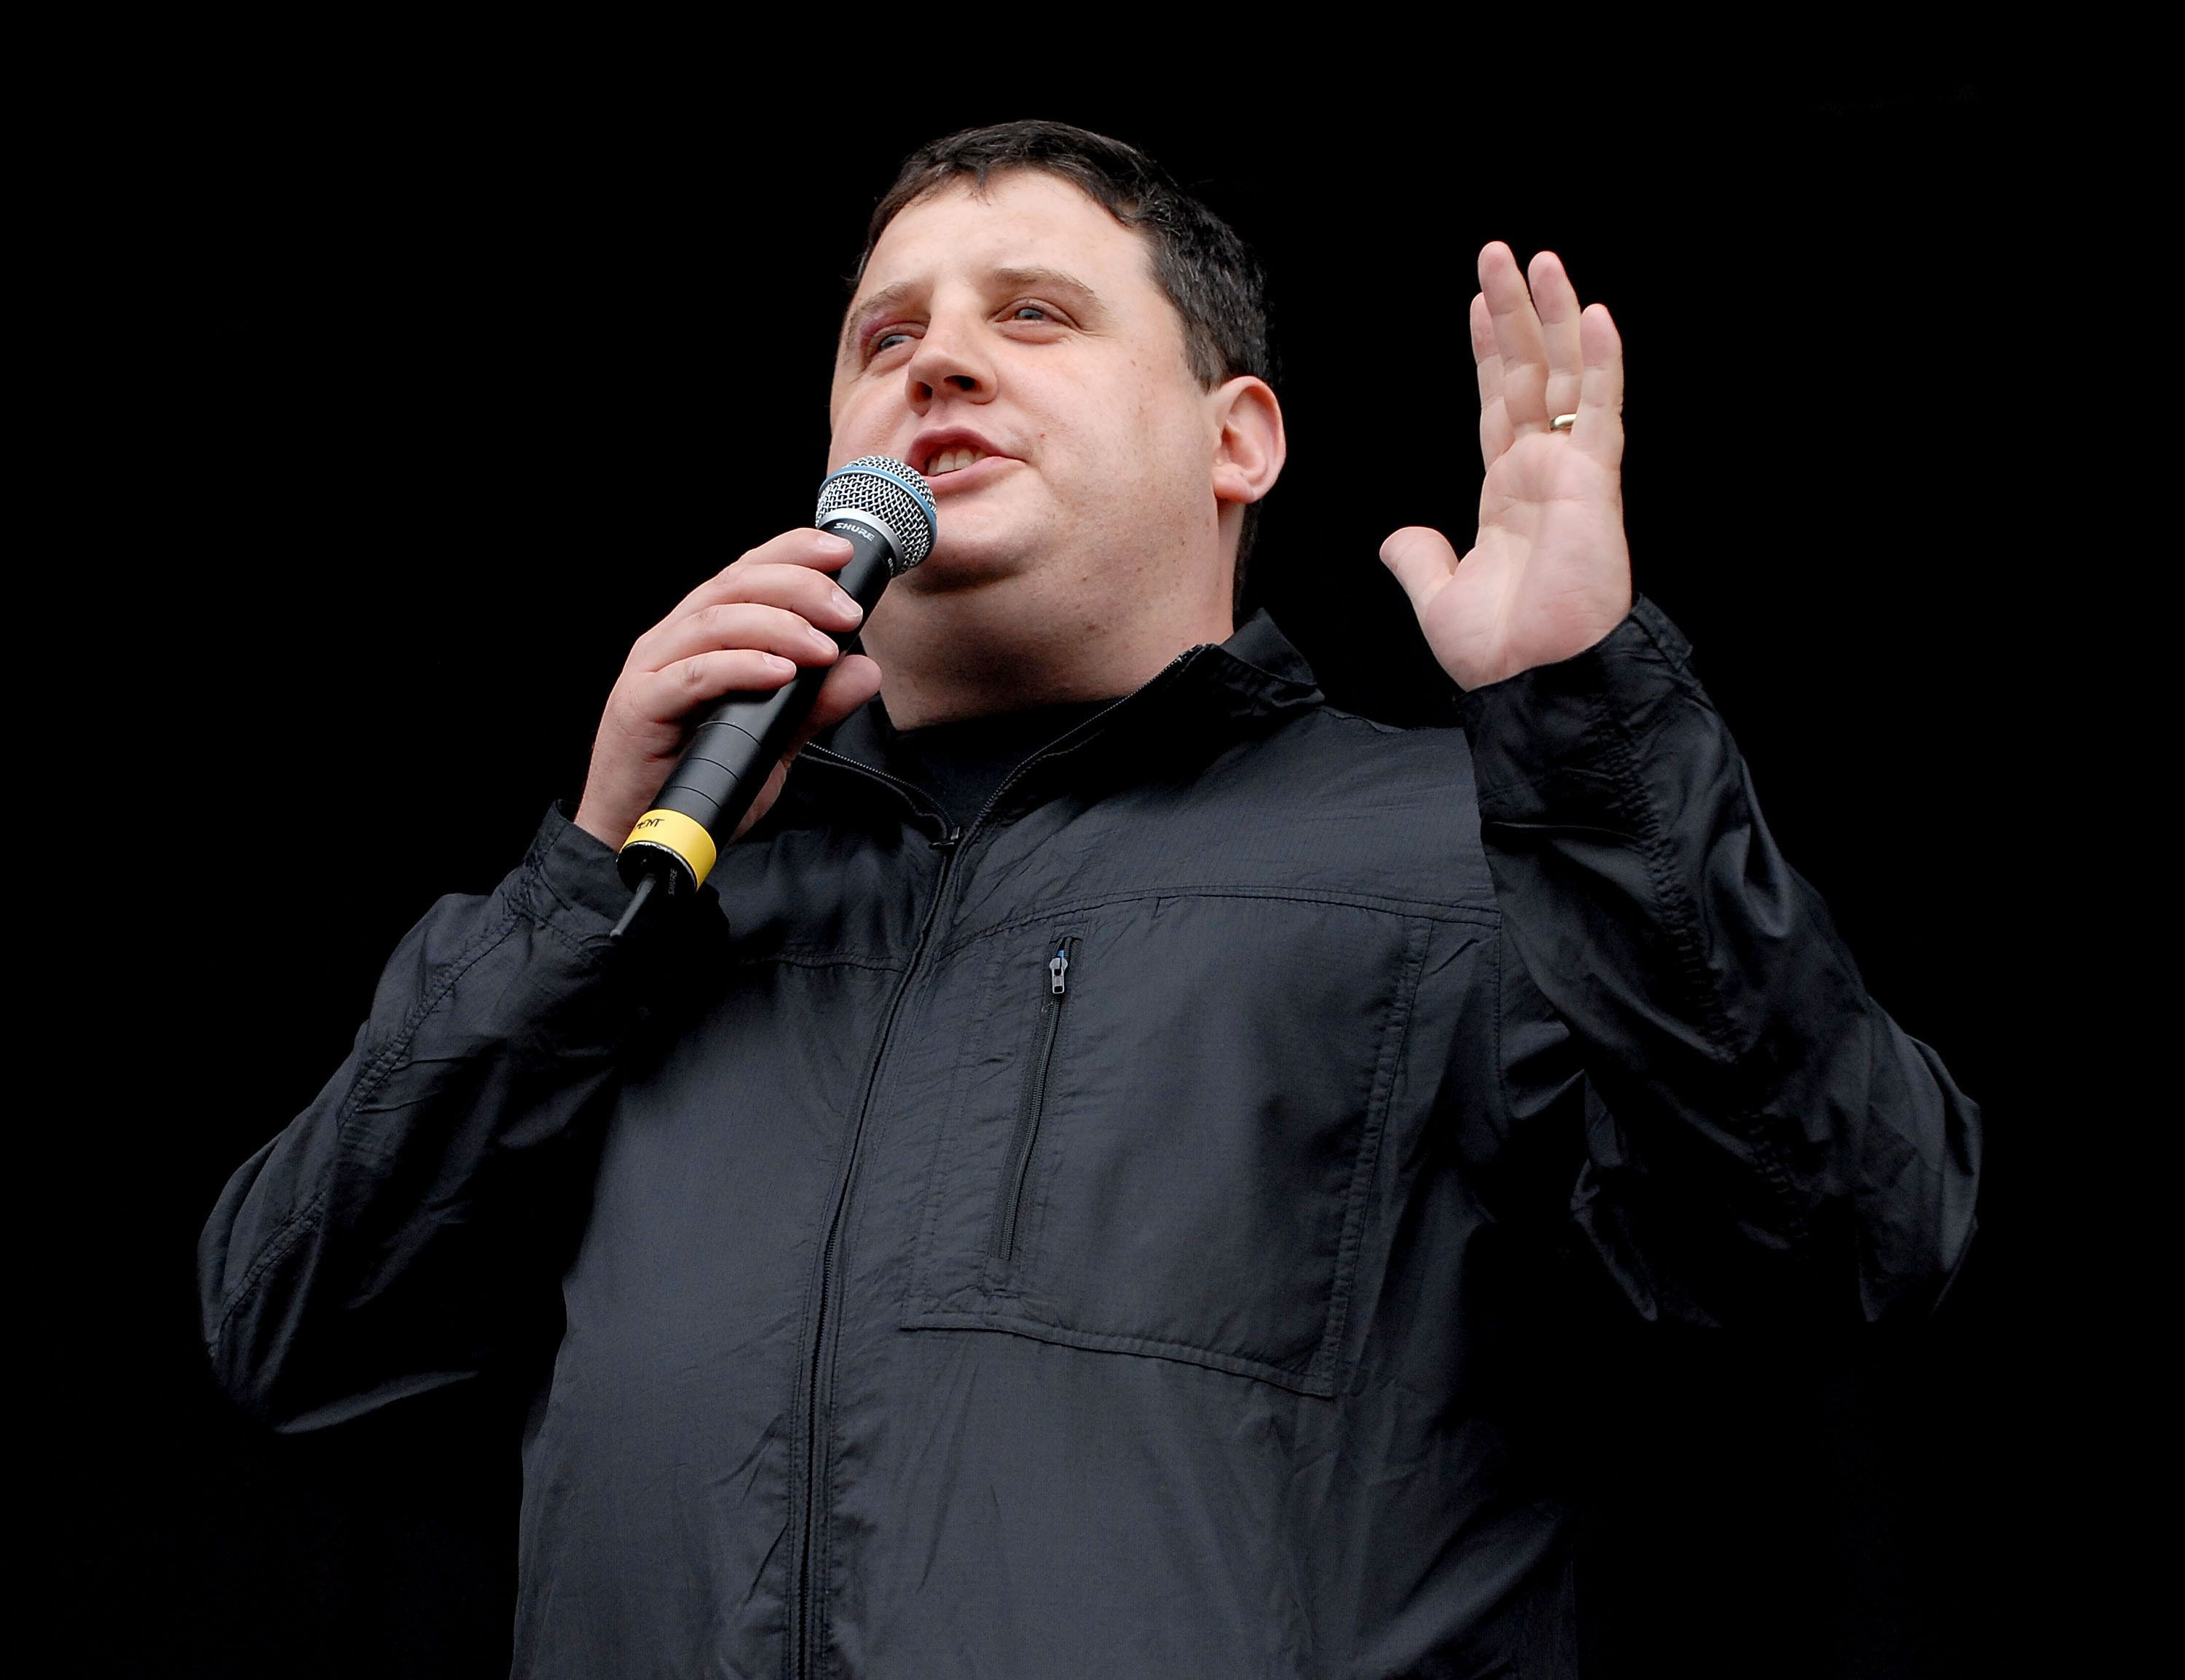 Peter Kay Cancels Record-Breaking Stand-Up Tour Due To 'Unforeseen Family Circumstances'